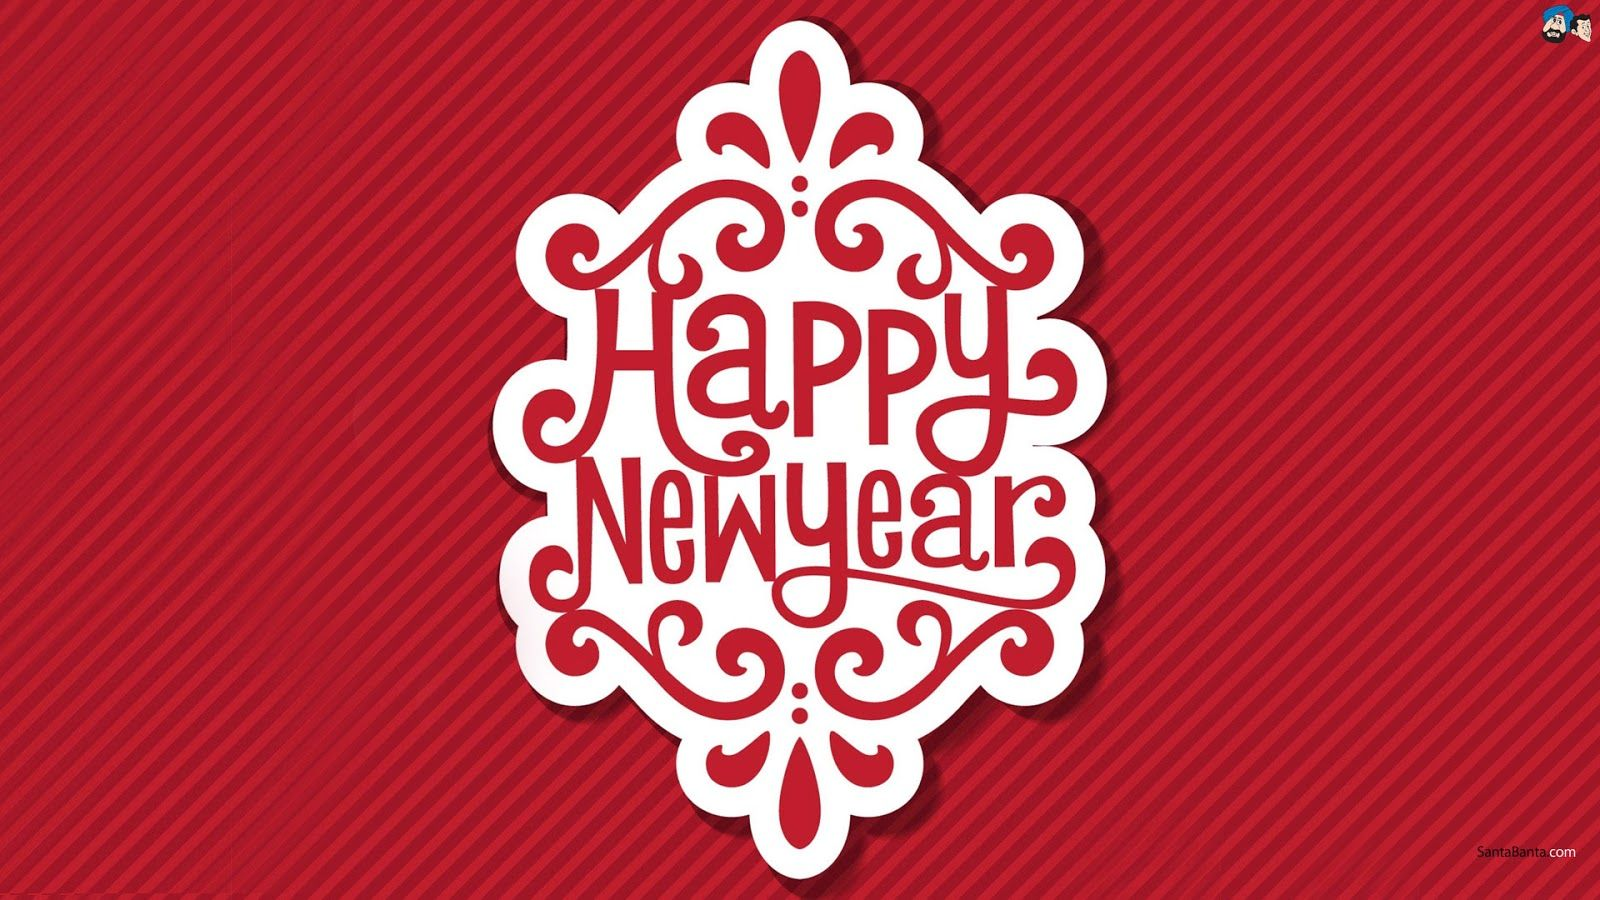 Happy New Year Fashionistas Hope 2014 Is A Fashionable One Sjf